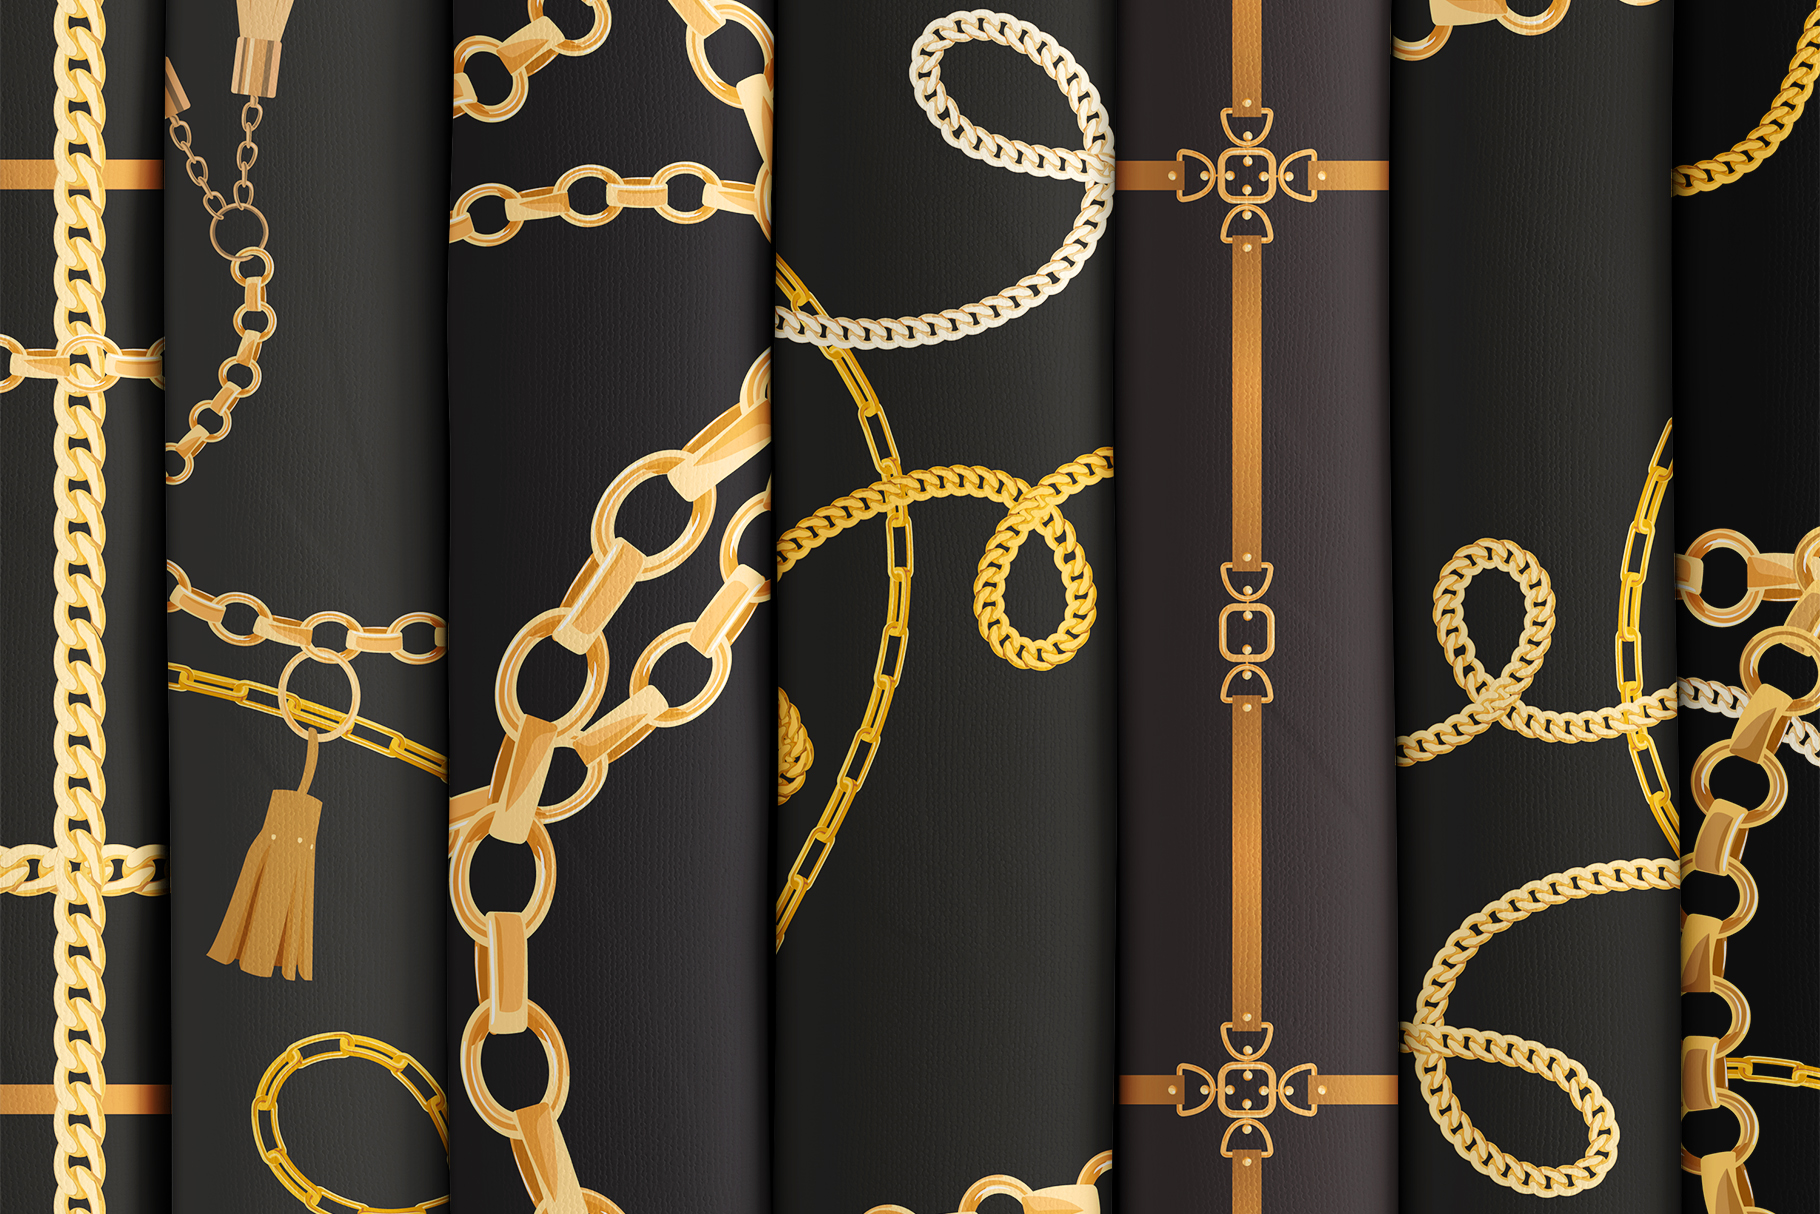 Chains and Belts Seamless Patterns. Set 1 example image 2